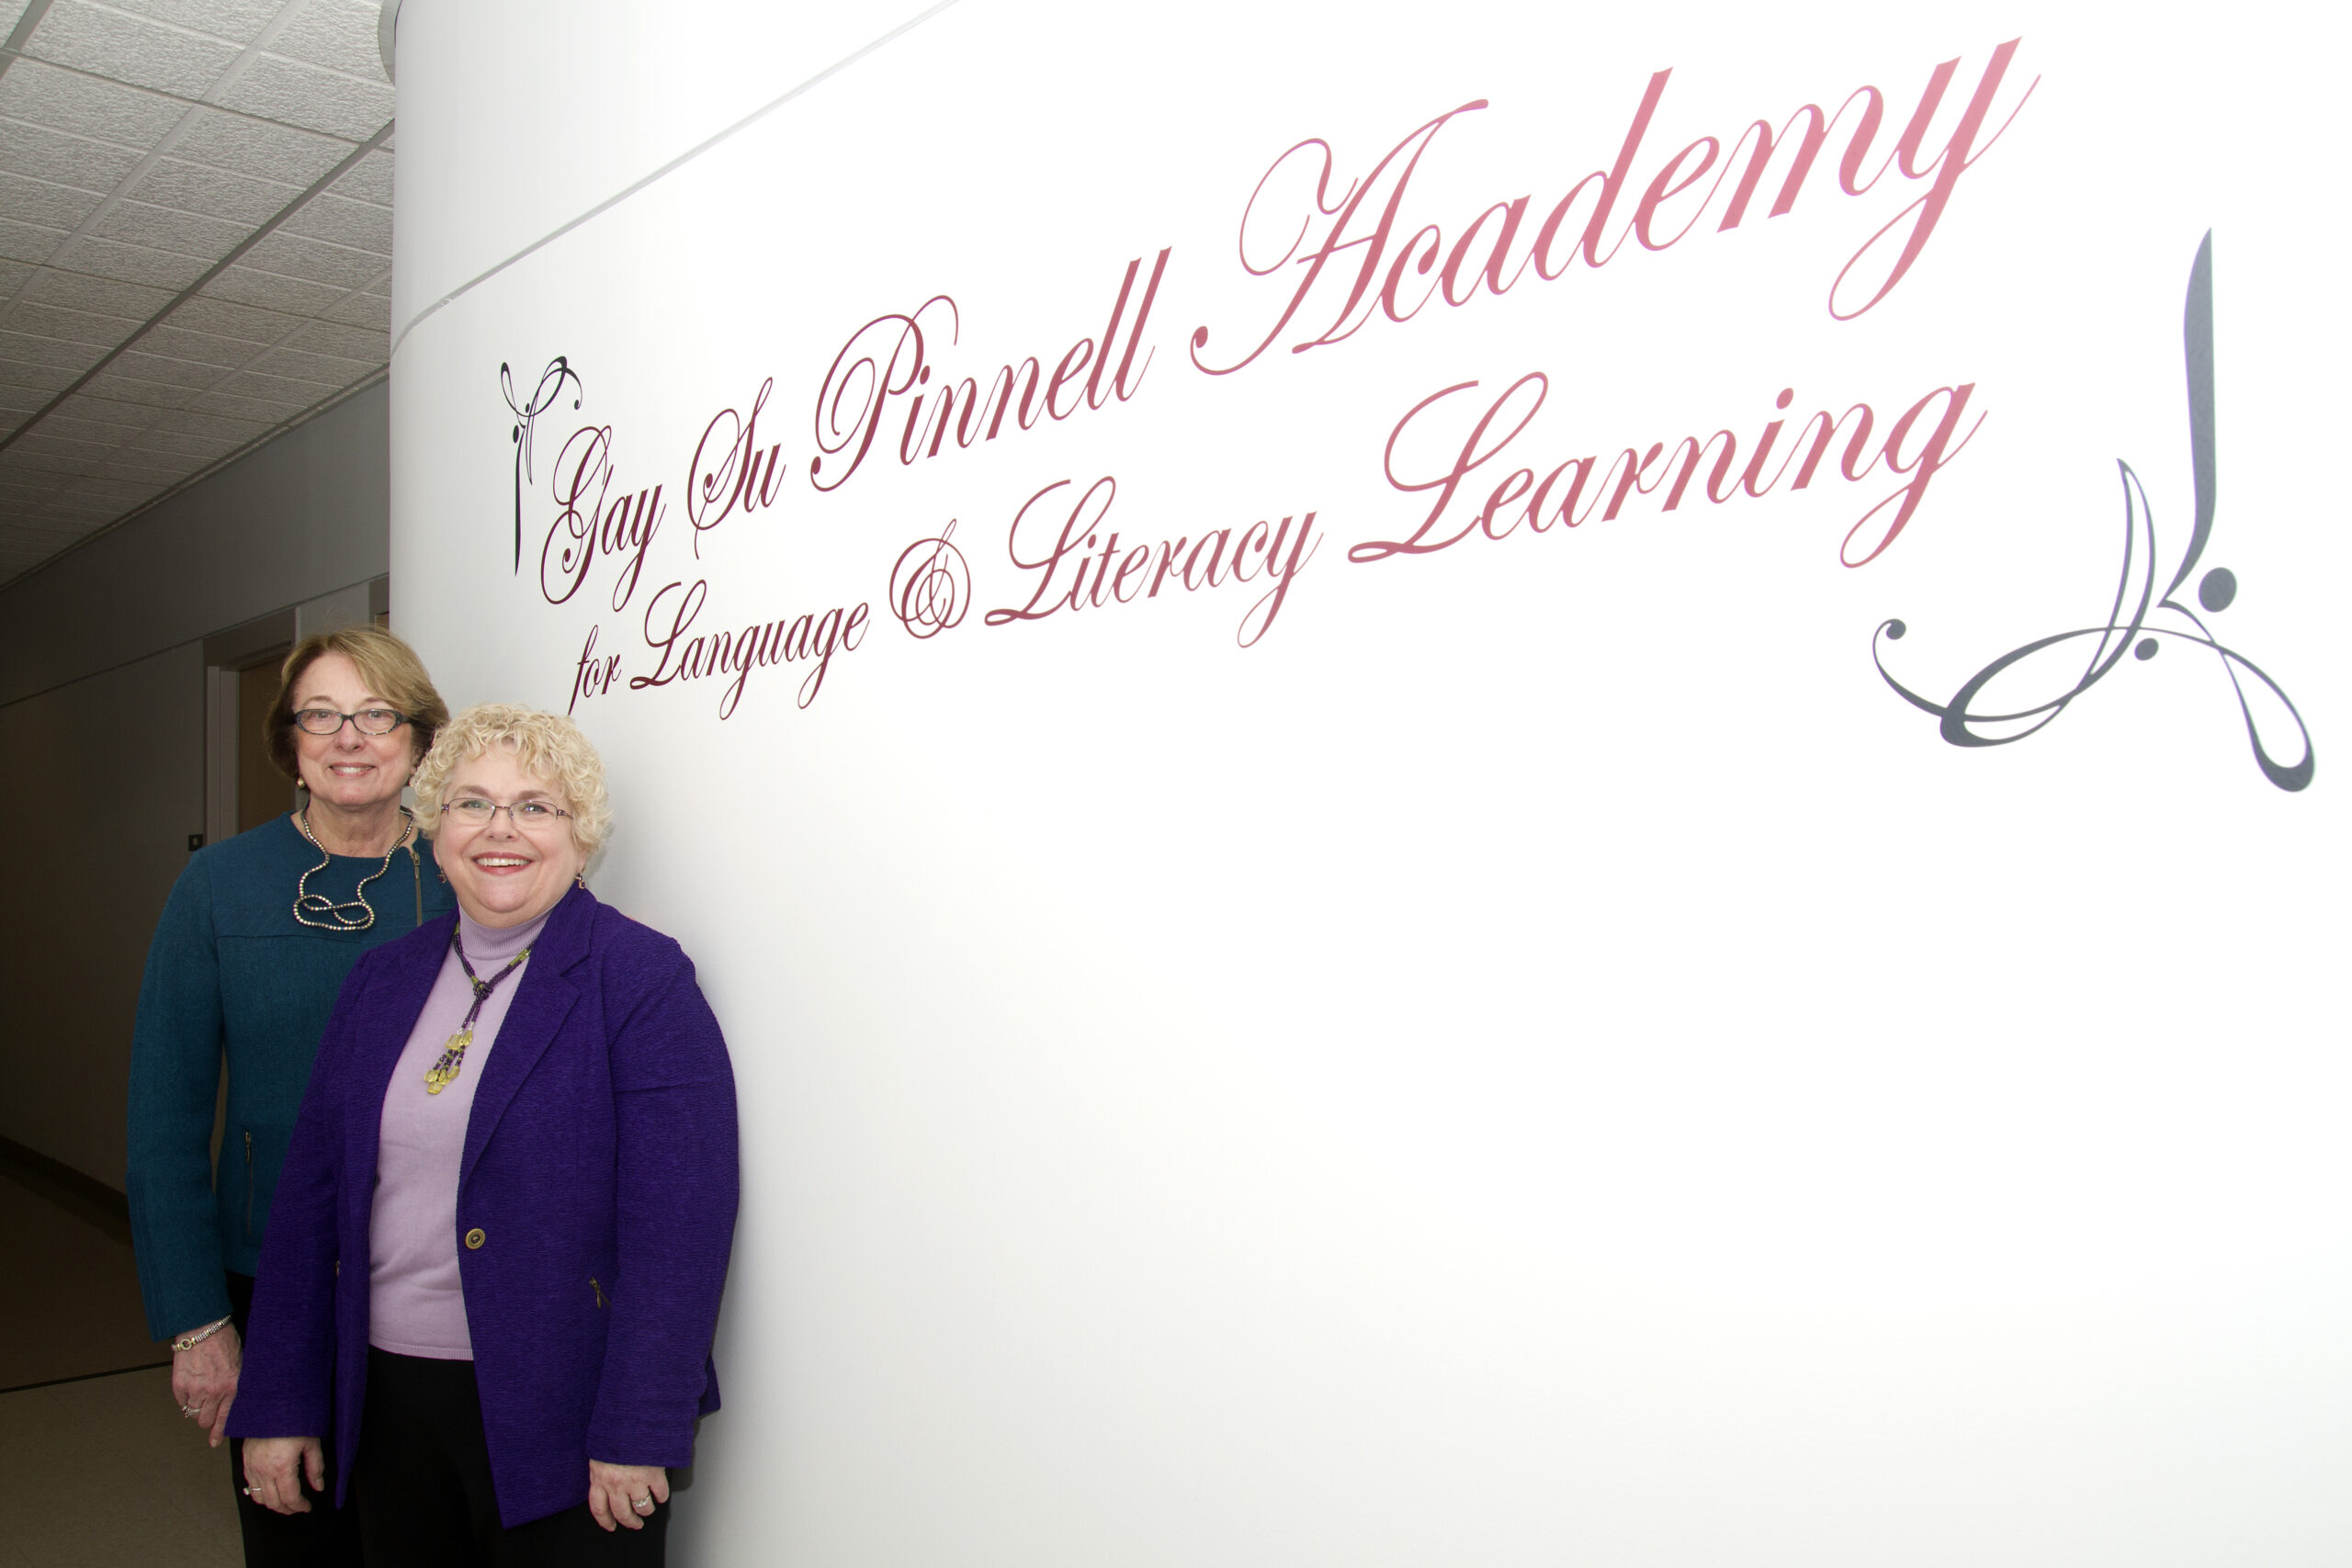 """Two women stand near a wall with writing that says """"Gay Su Pinnell Academy for Language and Literacy Learning"""""""